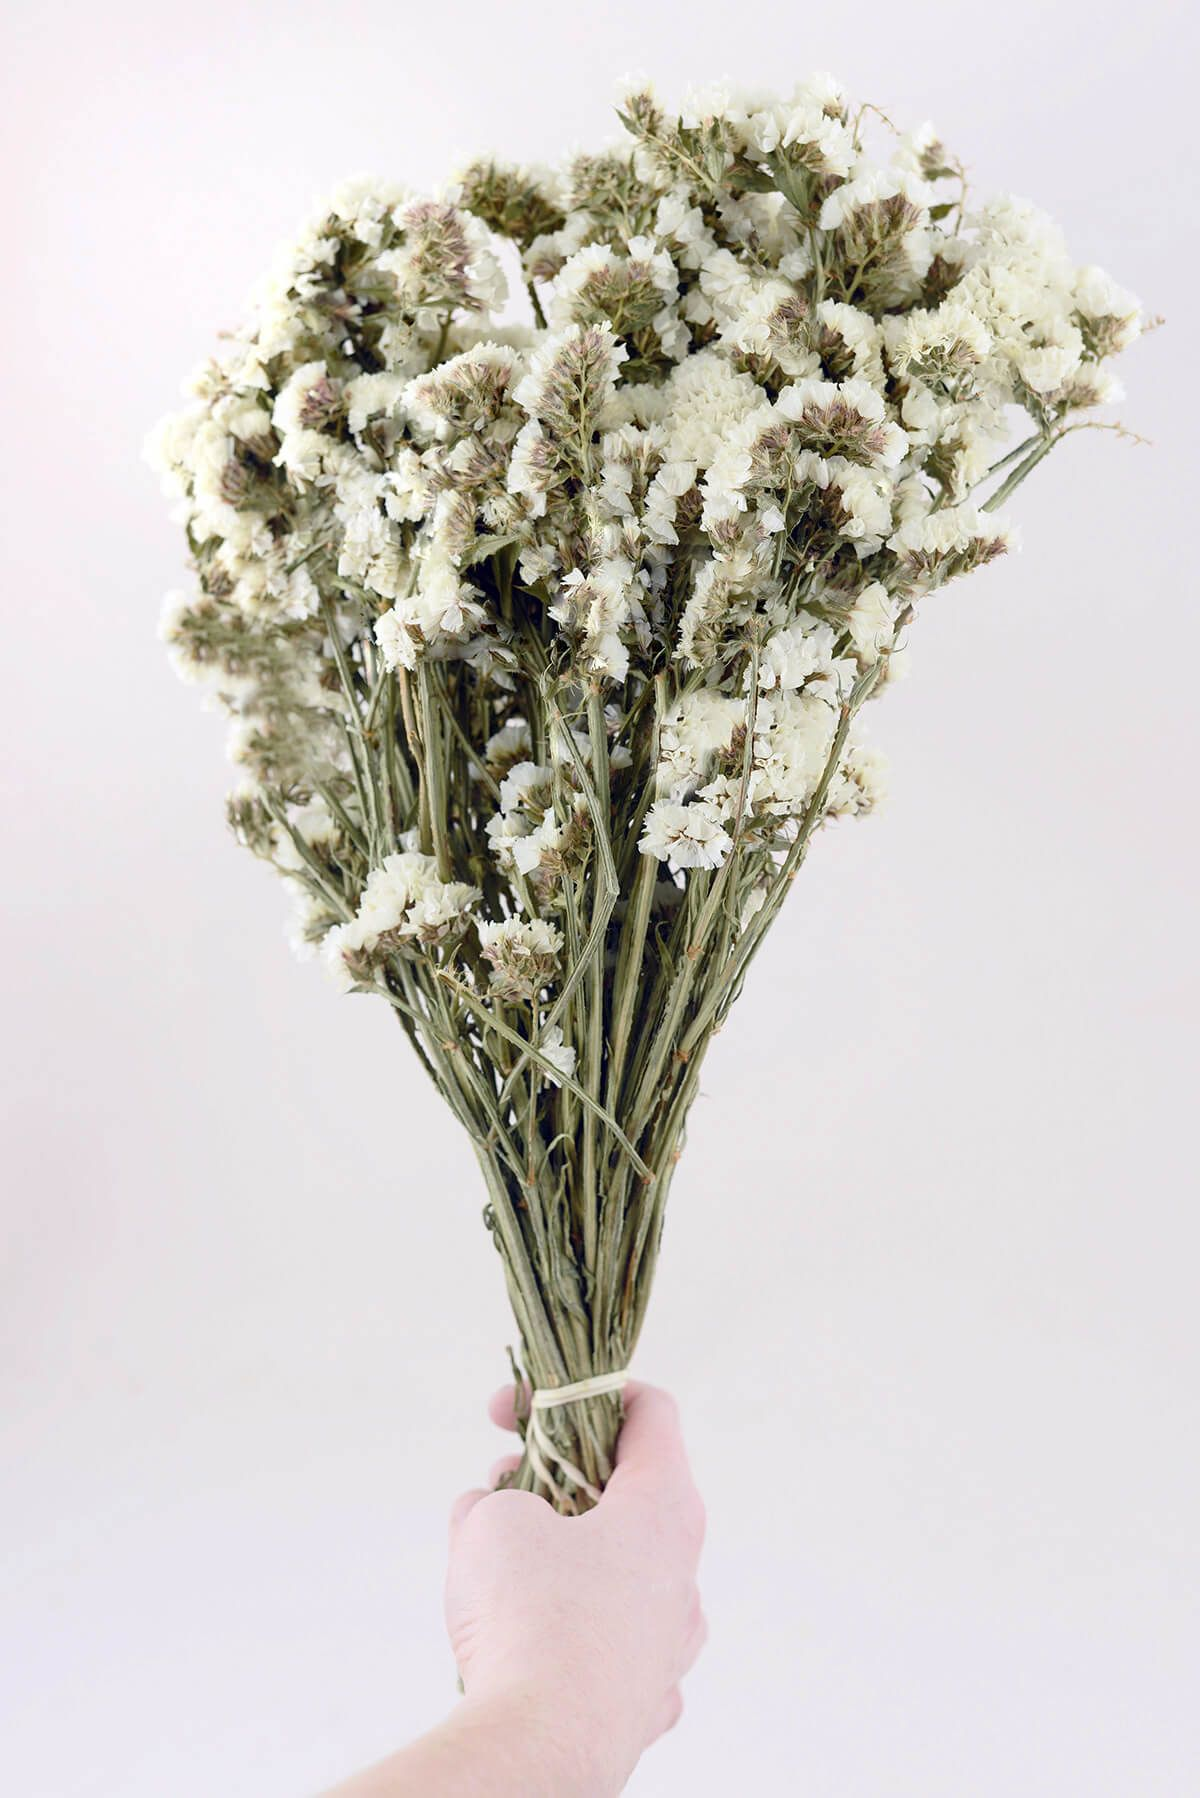 Dried white statice flowers in 2018 my new house pinterest dried white statice flowers mightylinksfo